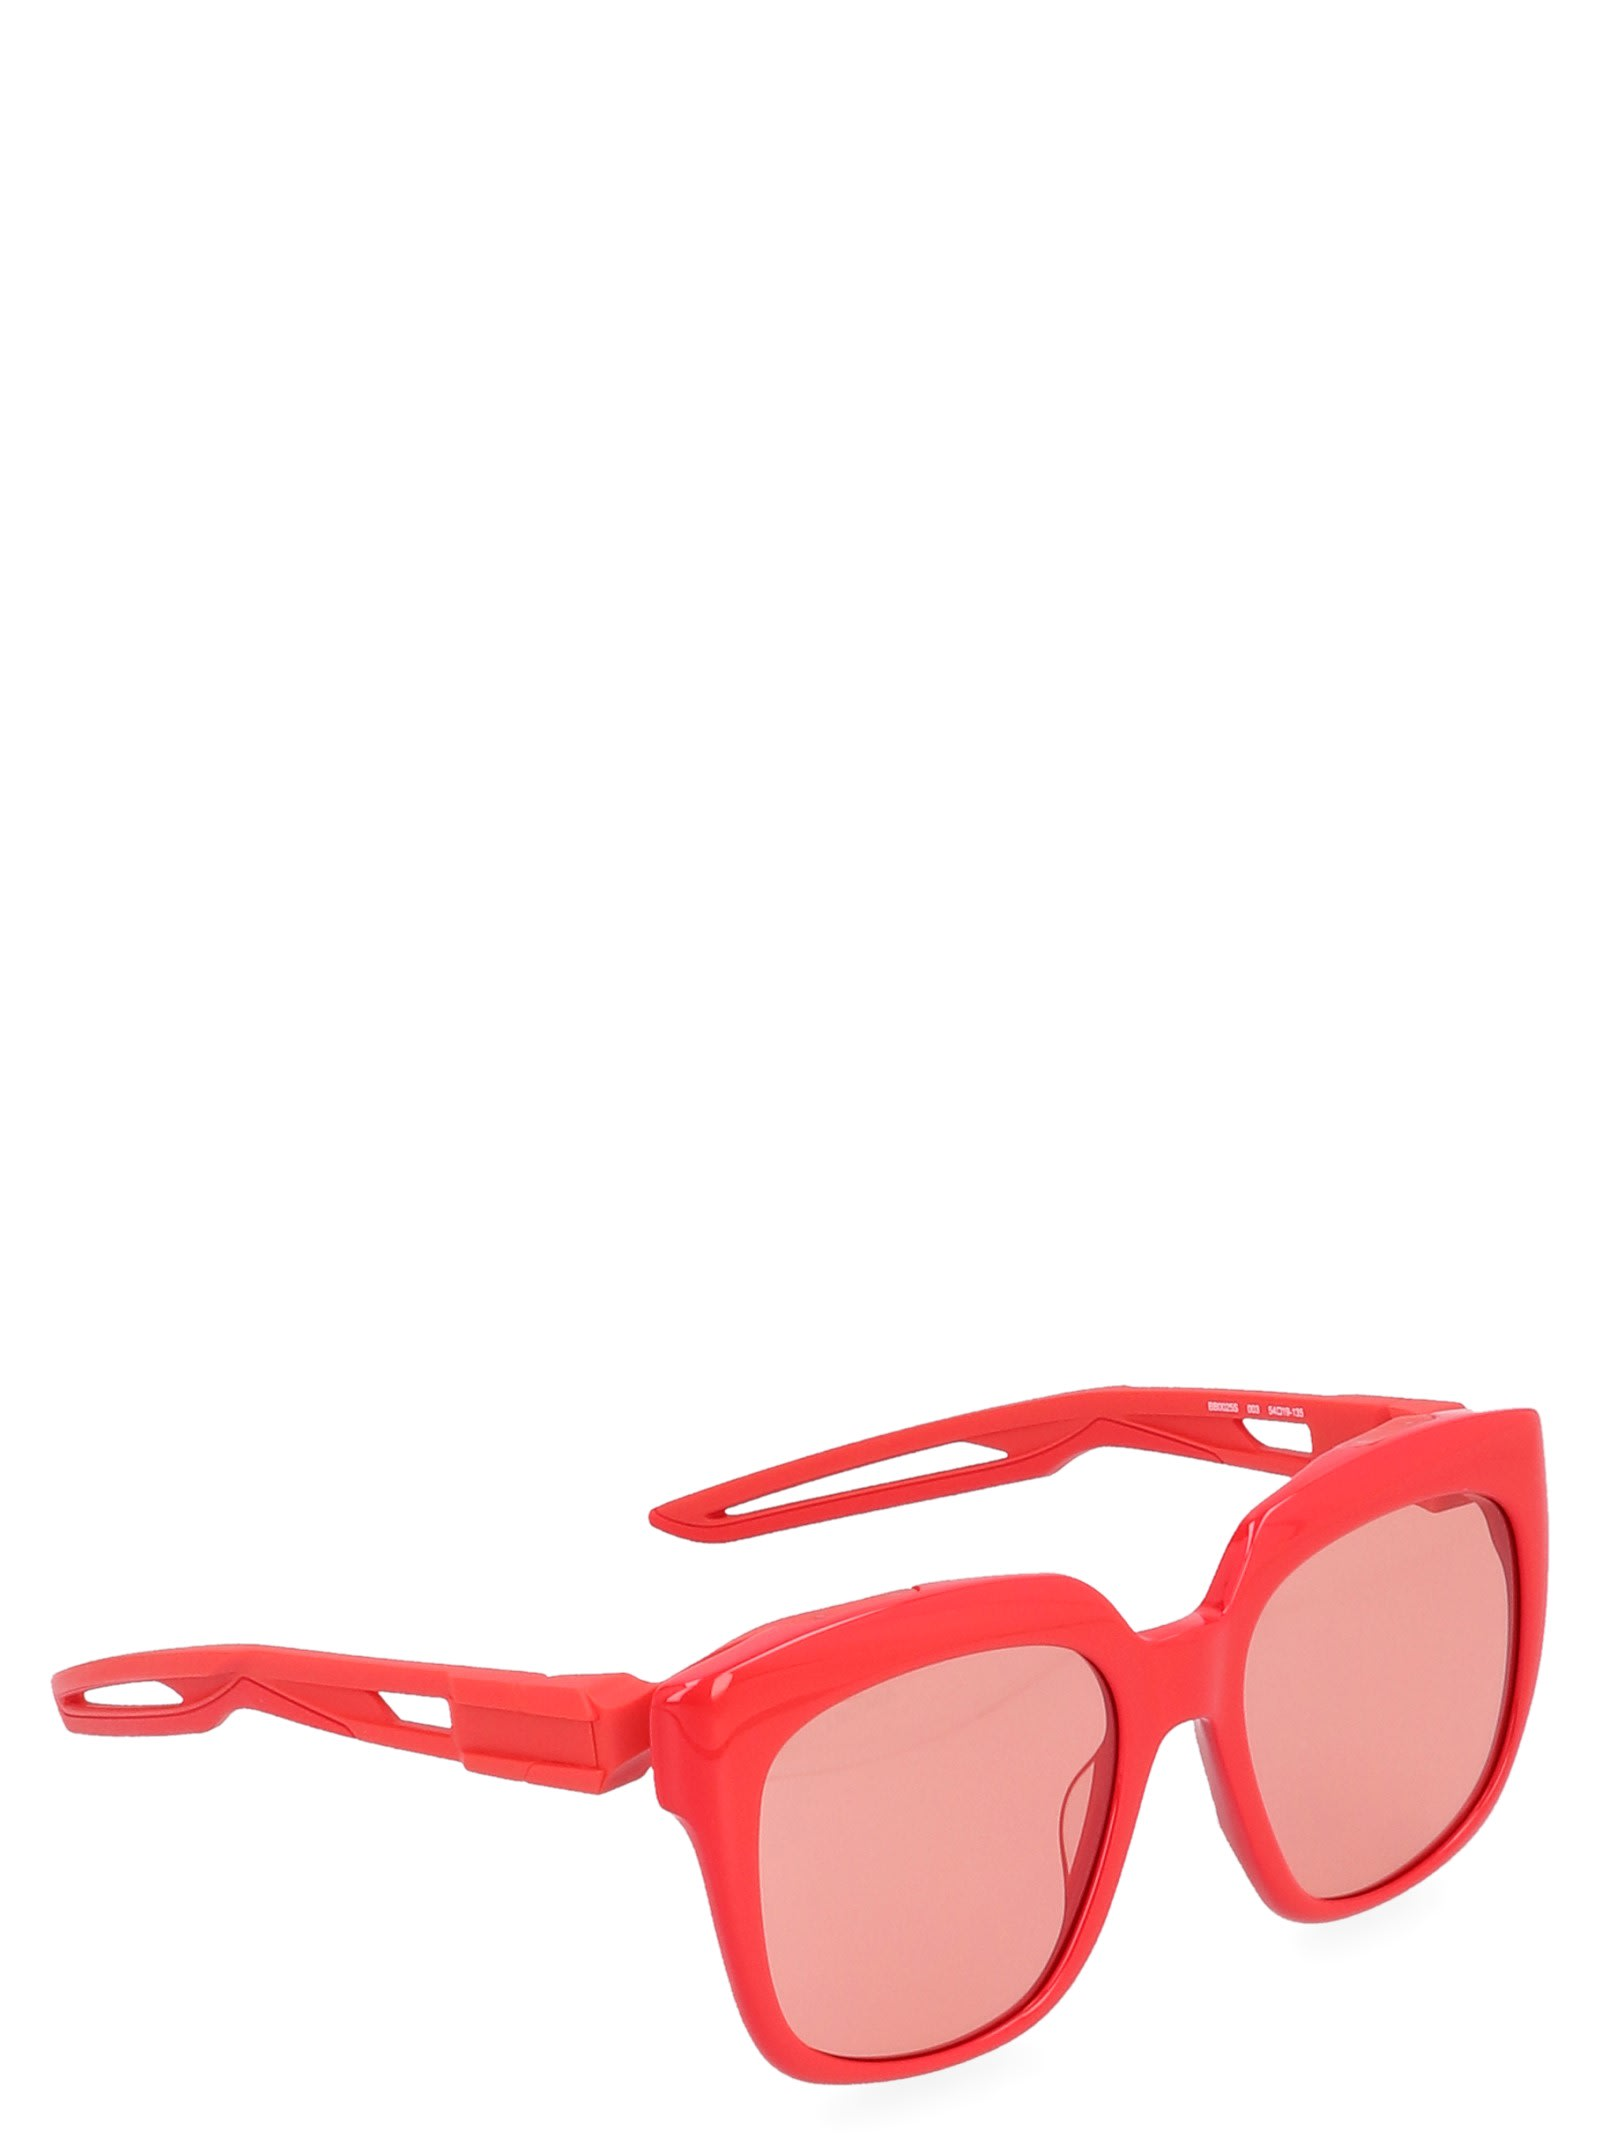 Buy Newest Balenciaga 'hybrid D-frame' Sunglasses